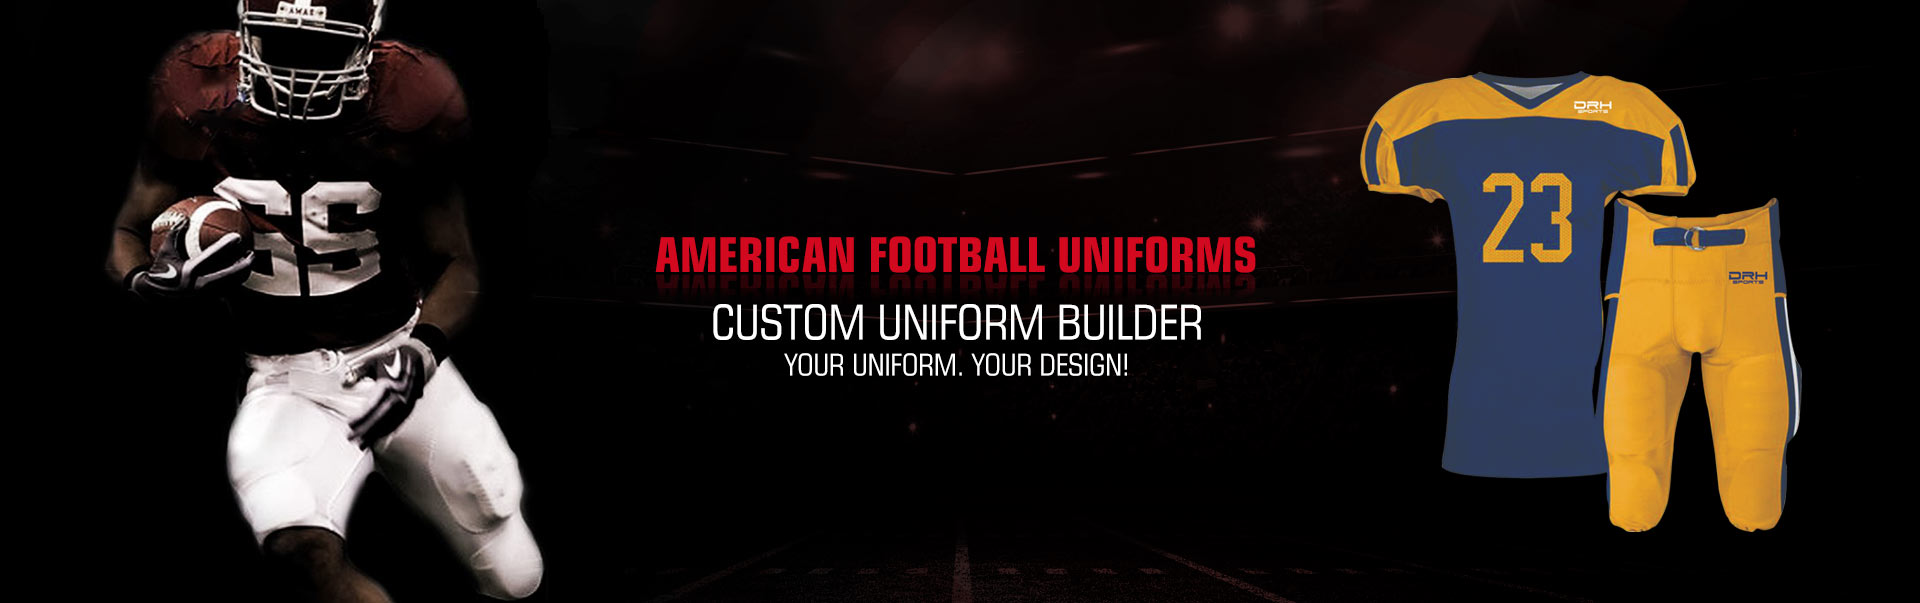 American Football Uniform Wholesaler, Suppliers in Arlington